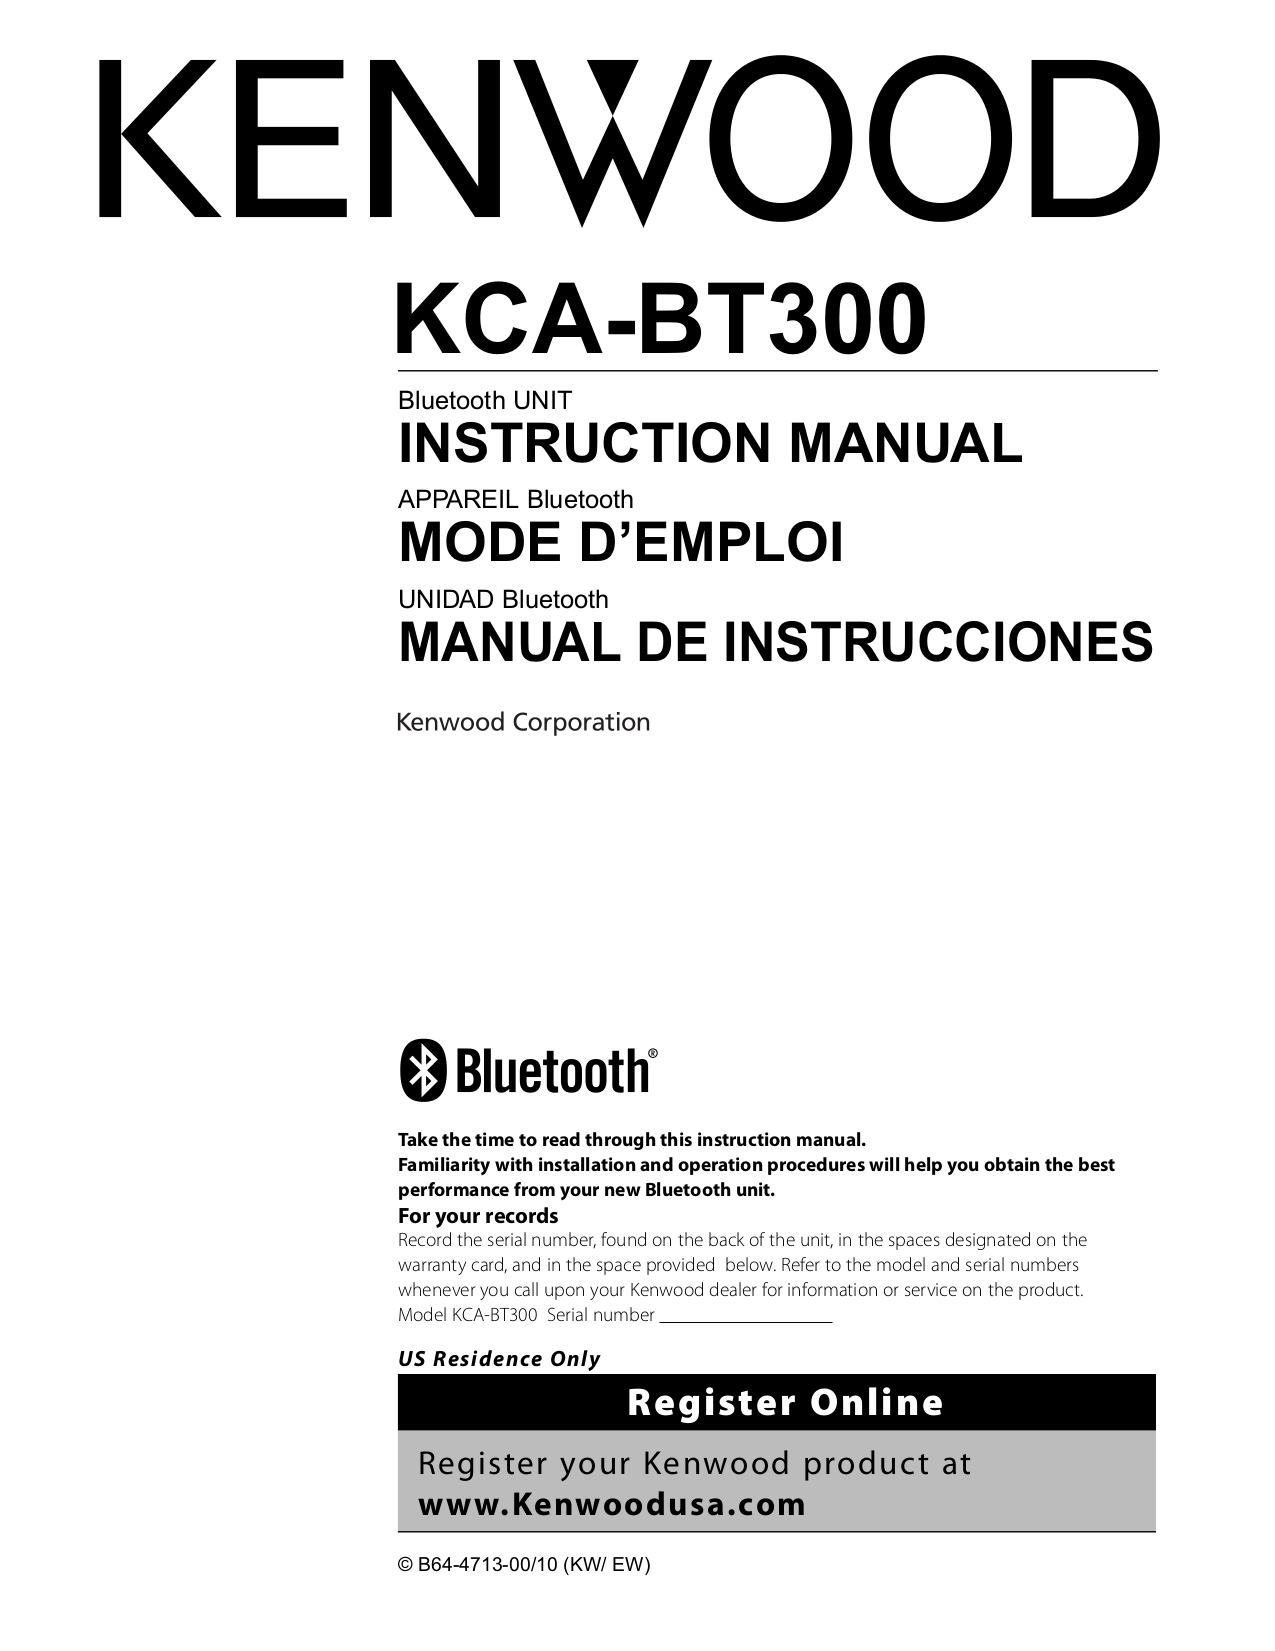 Download free pdf for Kenwood DPX-440 Car Receiver manual